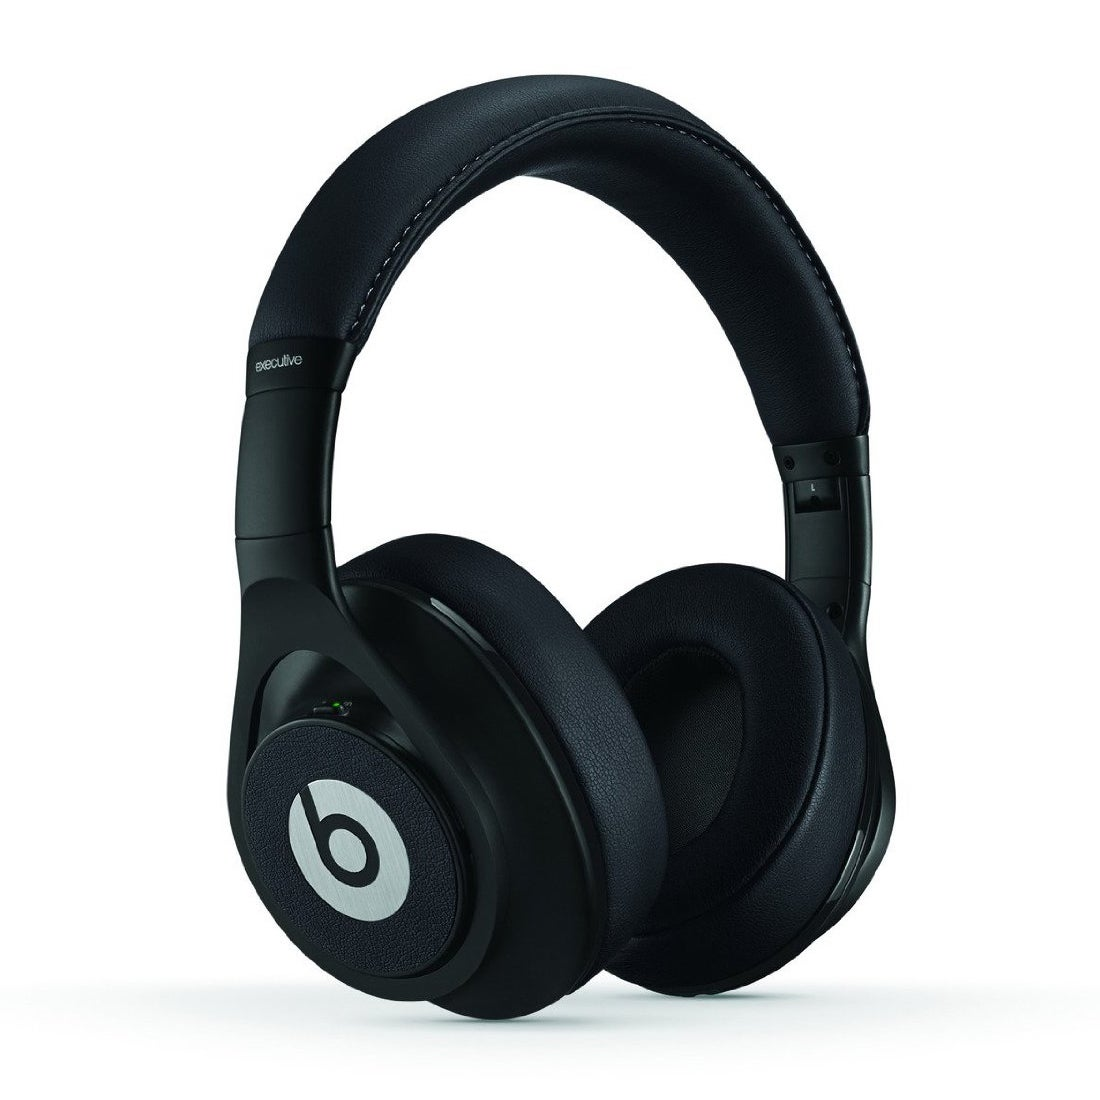 Reconditioned Beats Executive Over-Ear Noise Cancelling Headphones-Executive Black Executive Wired Black